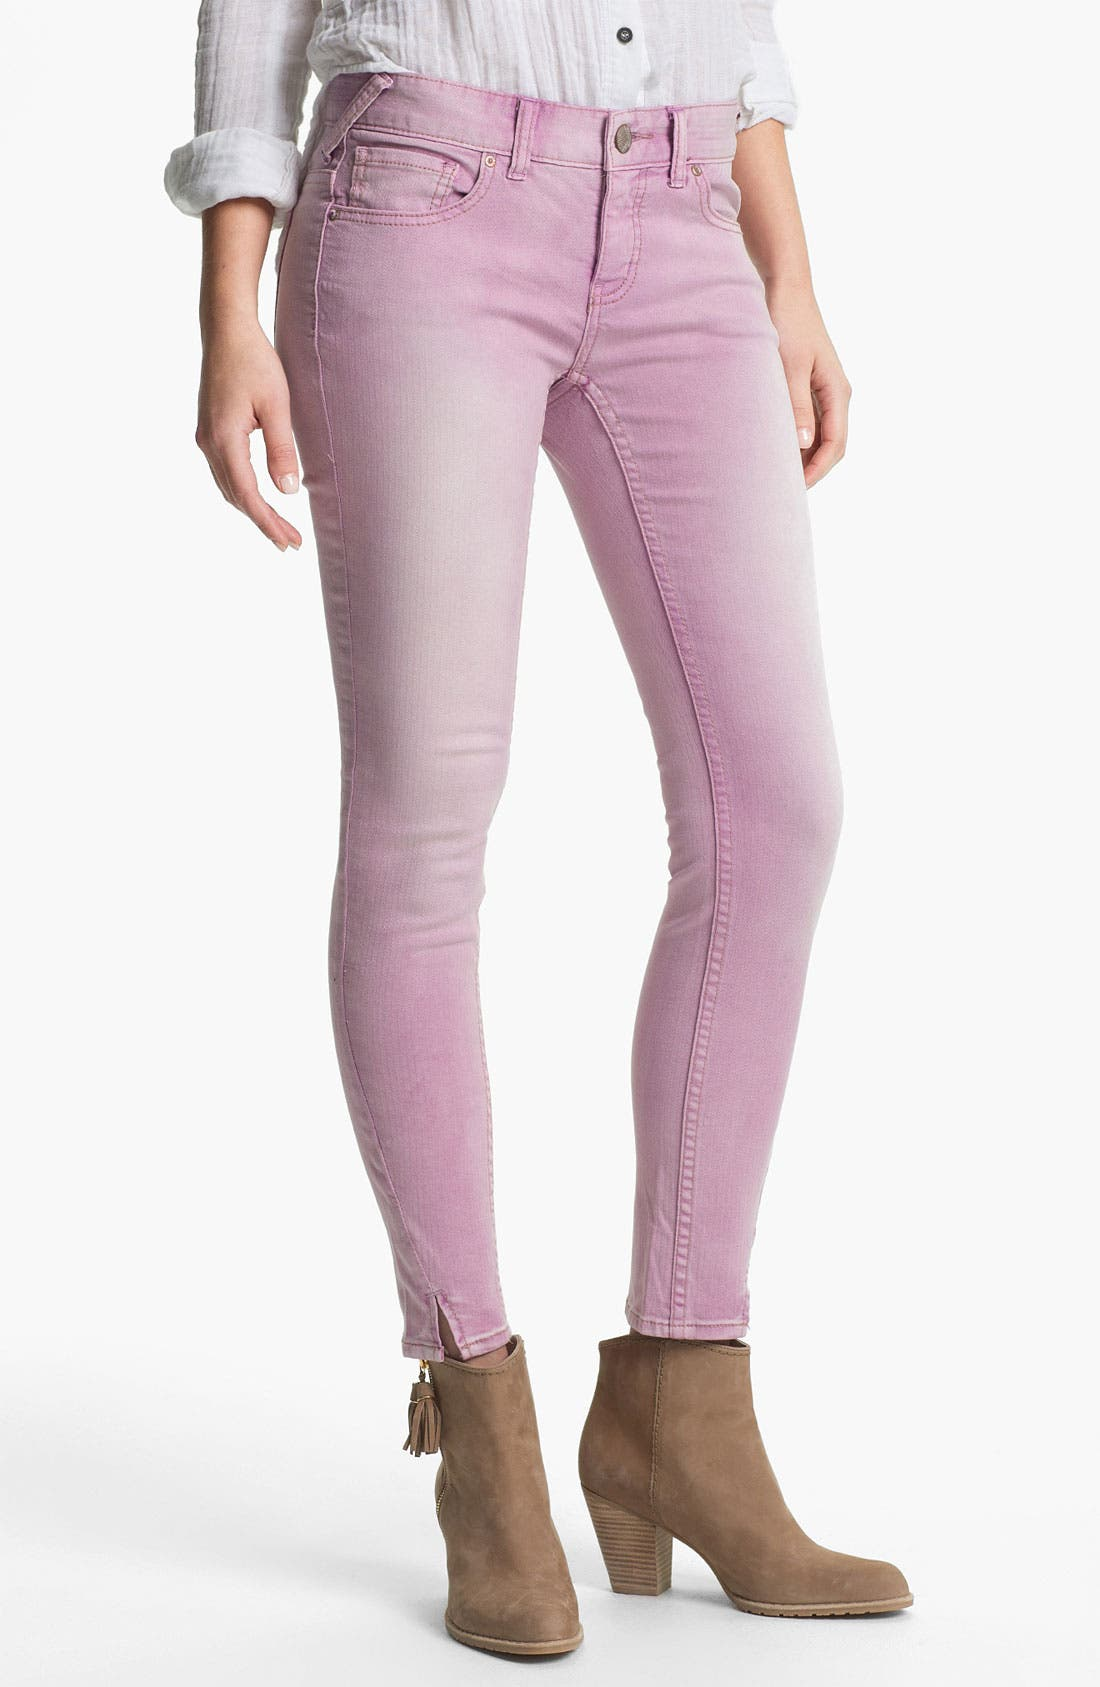 Alternate Image 1 Selected - Free People Crop Stretch Denim Skinny Jeans (Orchid)